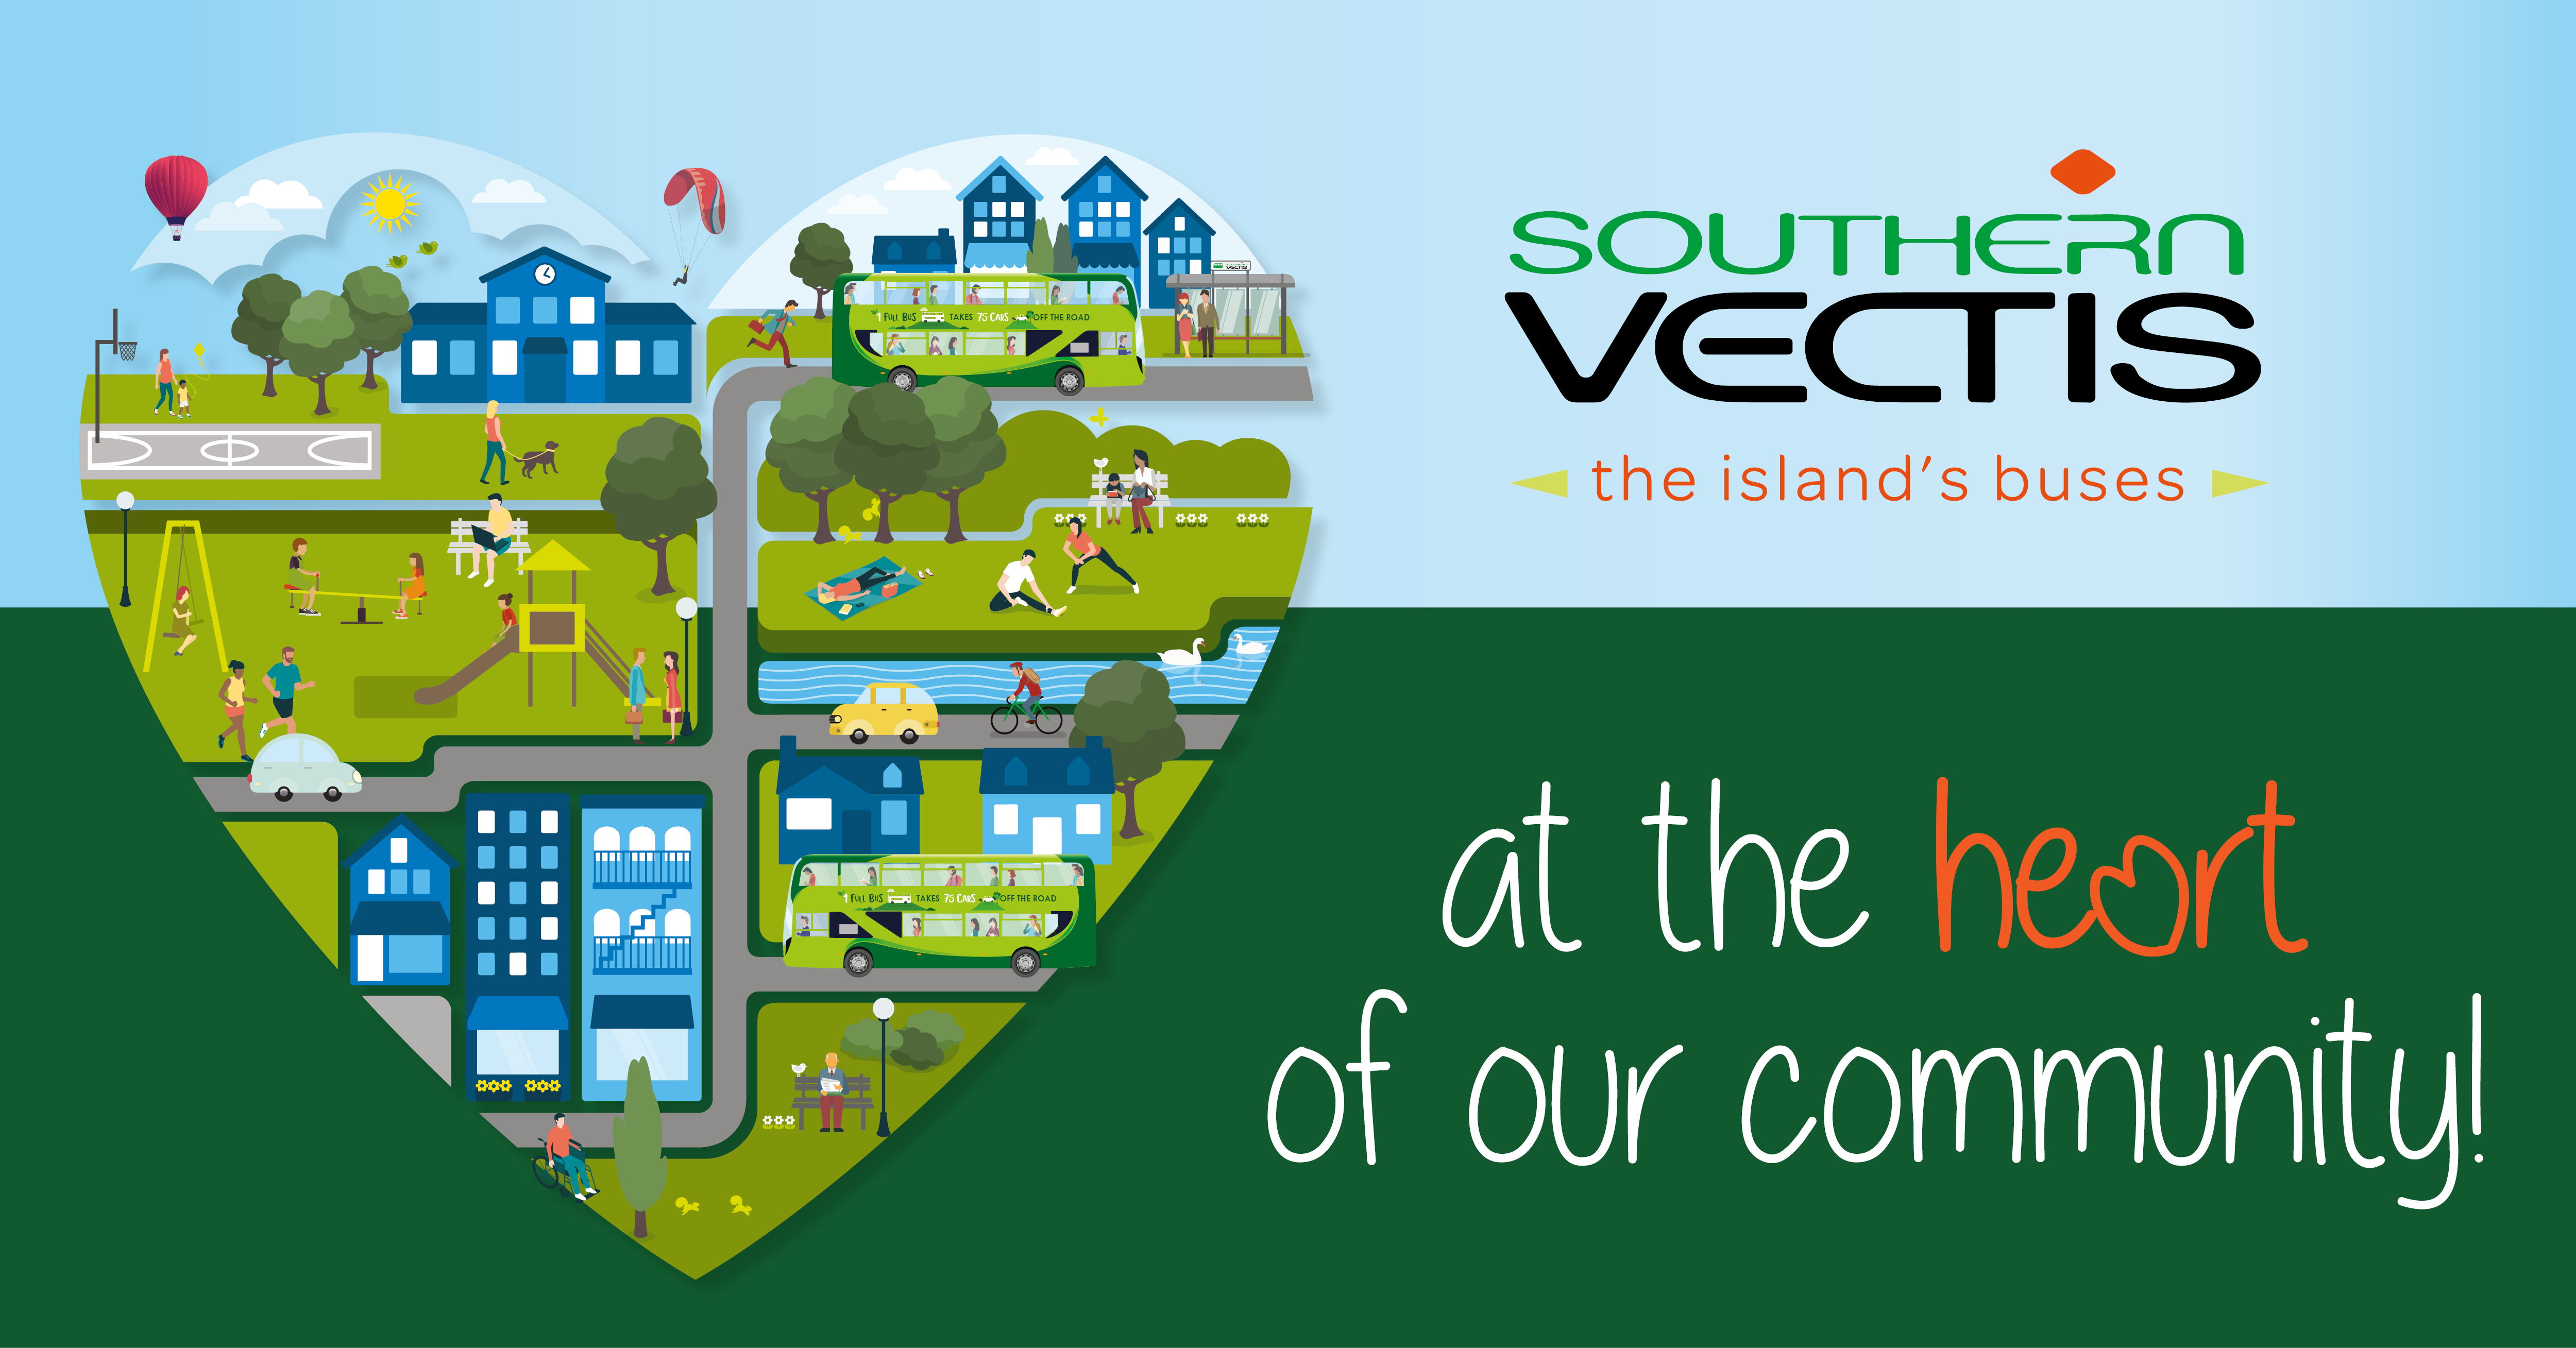 Southern Vectis at the heart of our community